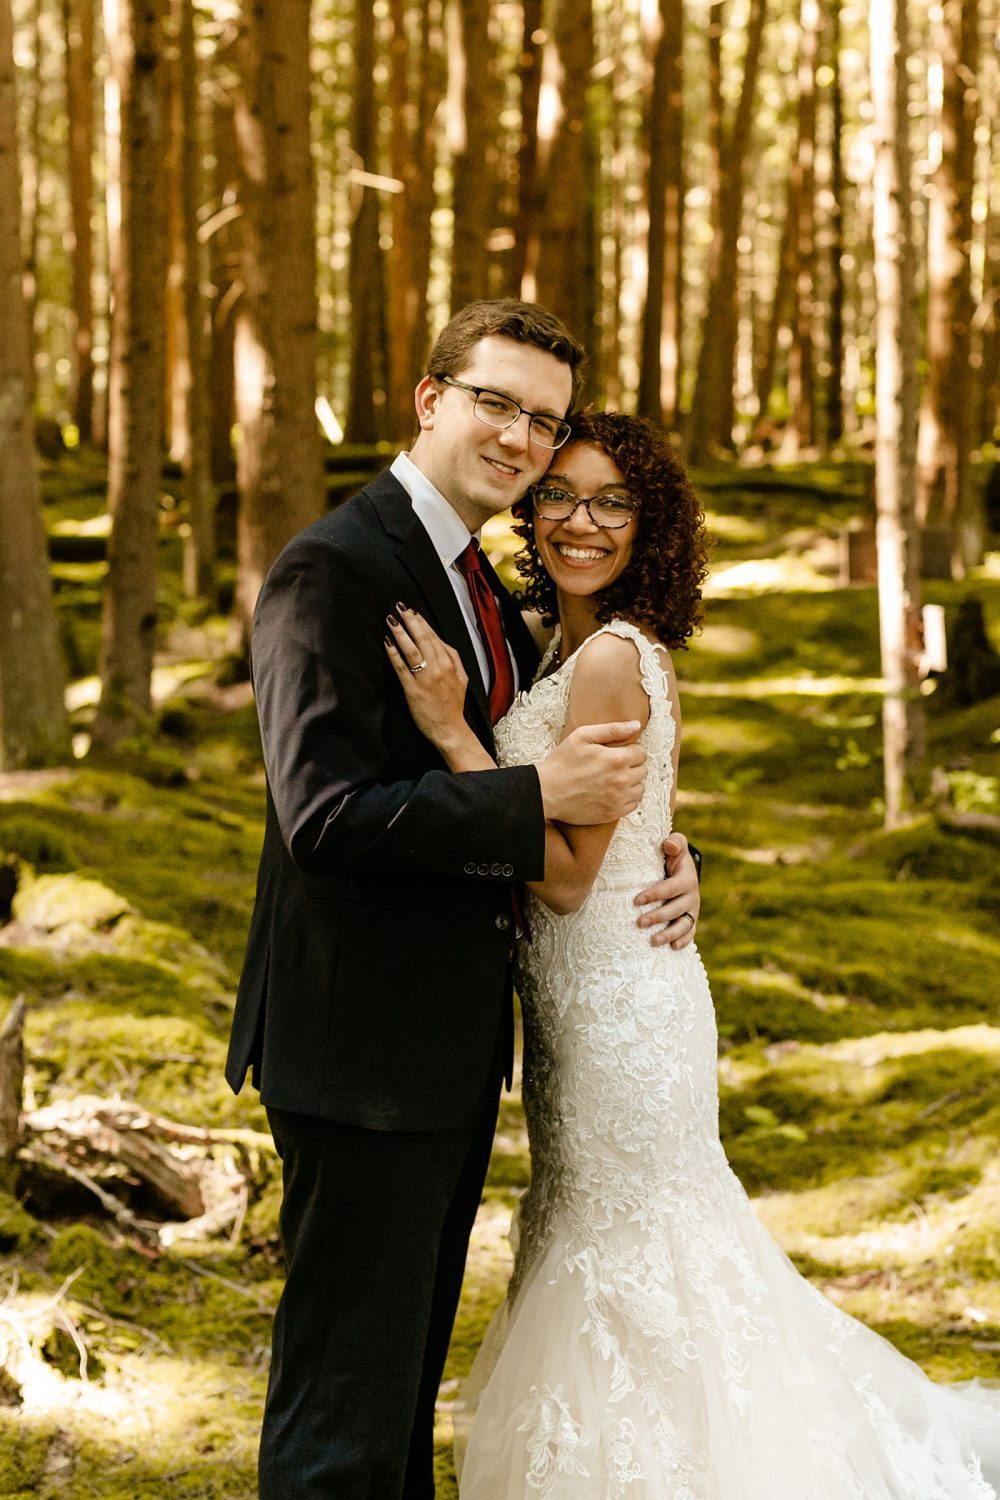 bride and groom pose smiling at the camera, grooms hand on brides arm, Black bride, lace dress, red tie groom, forest venue in Washington